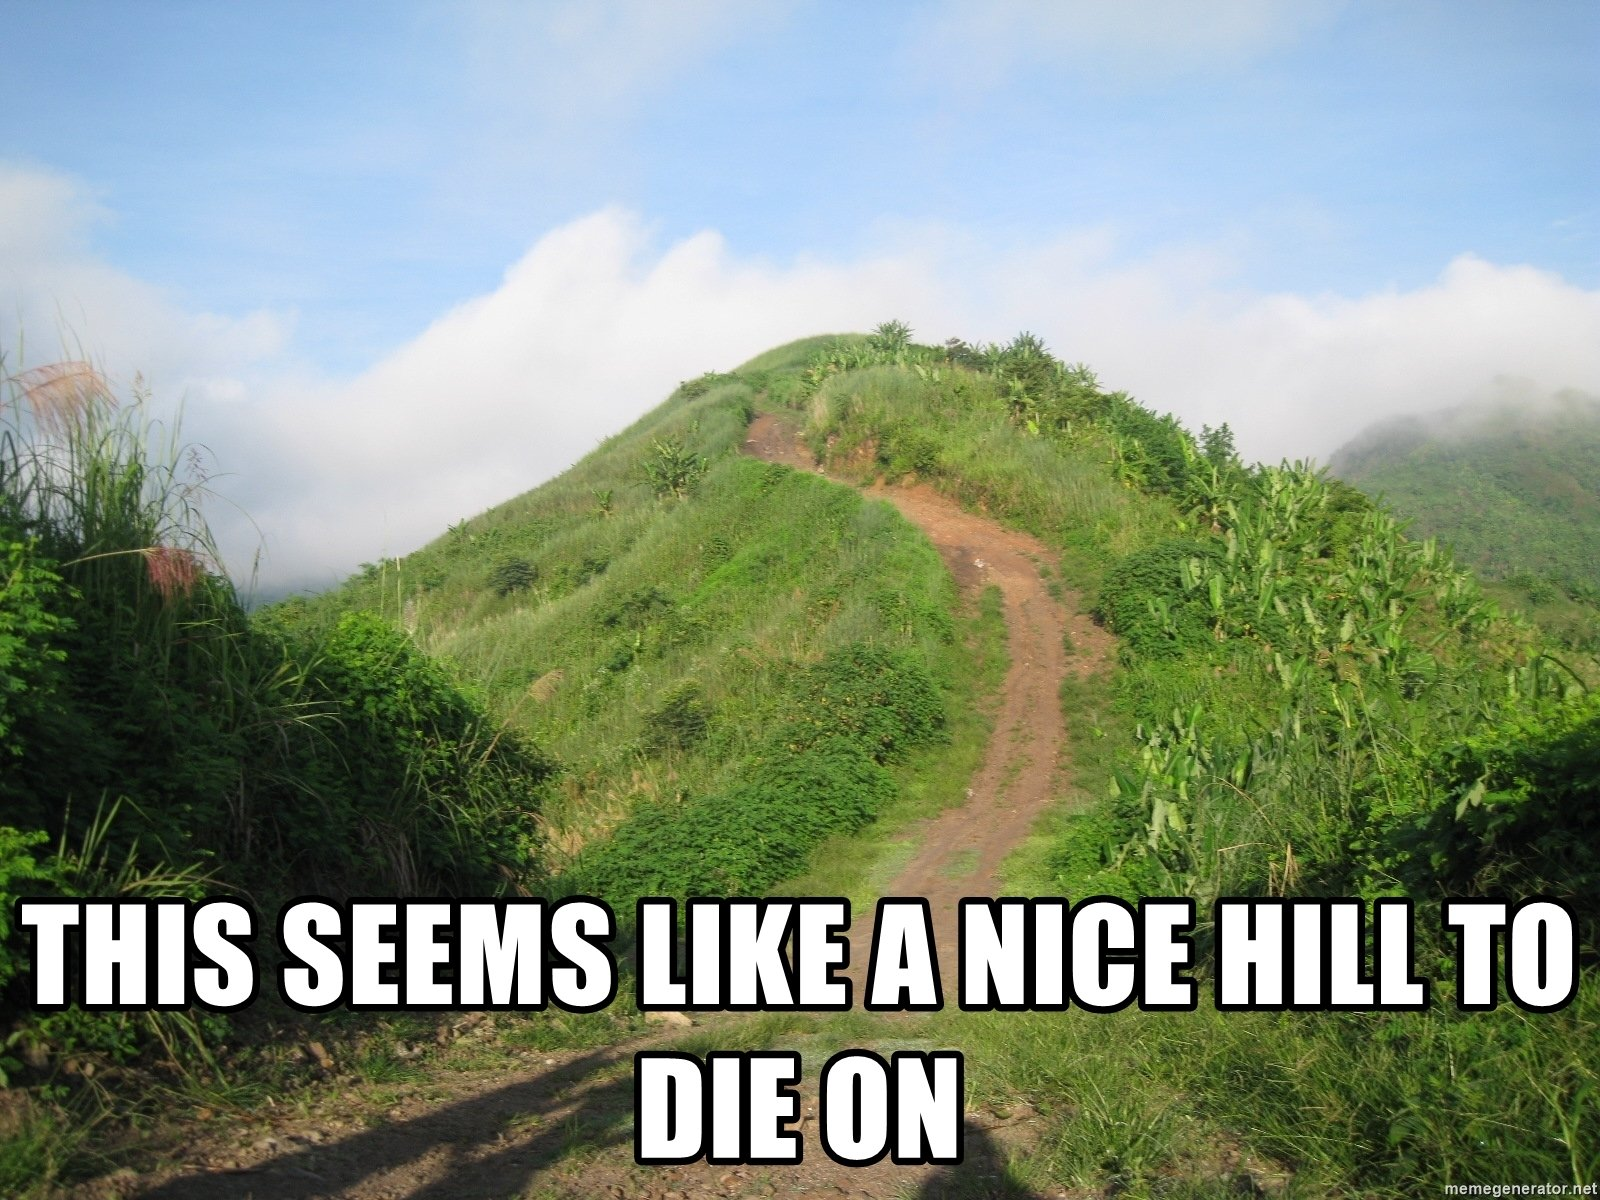 A picture of a pleasant hill with the caption